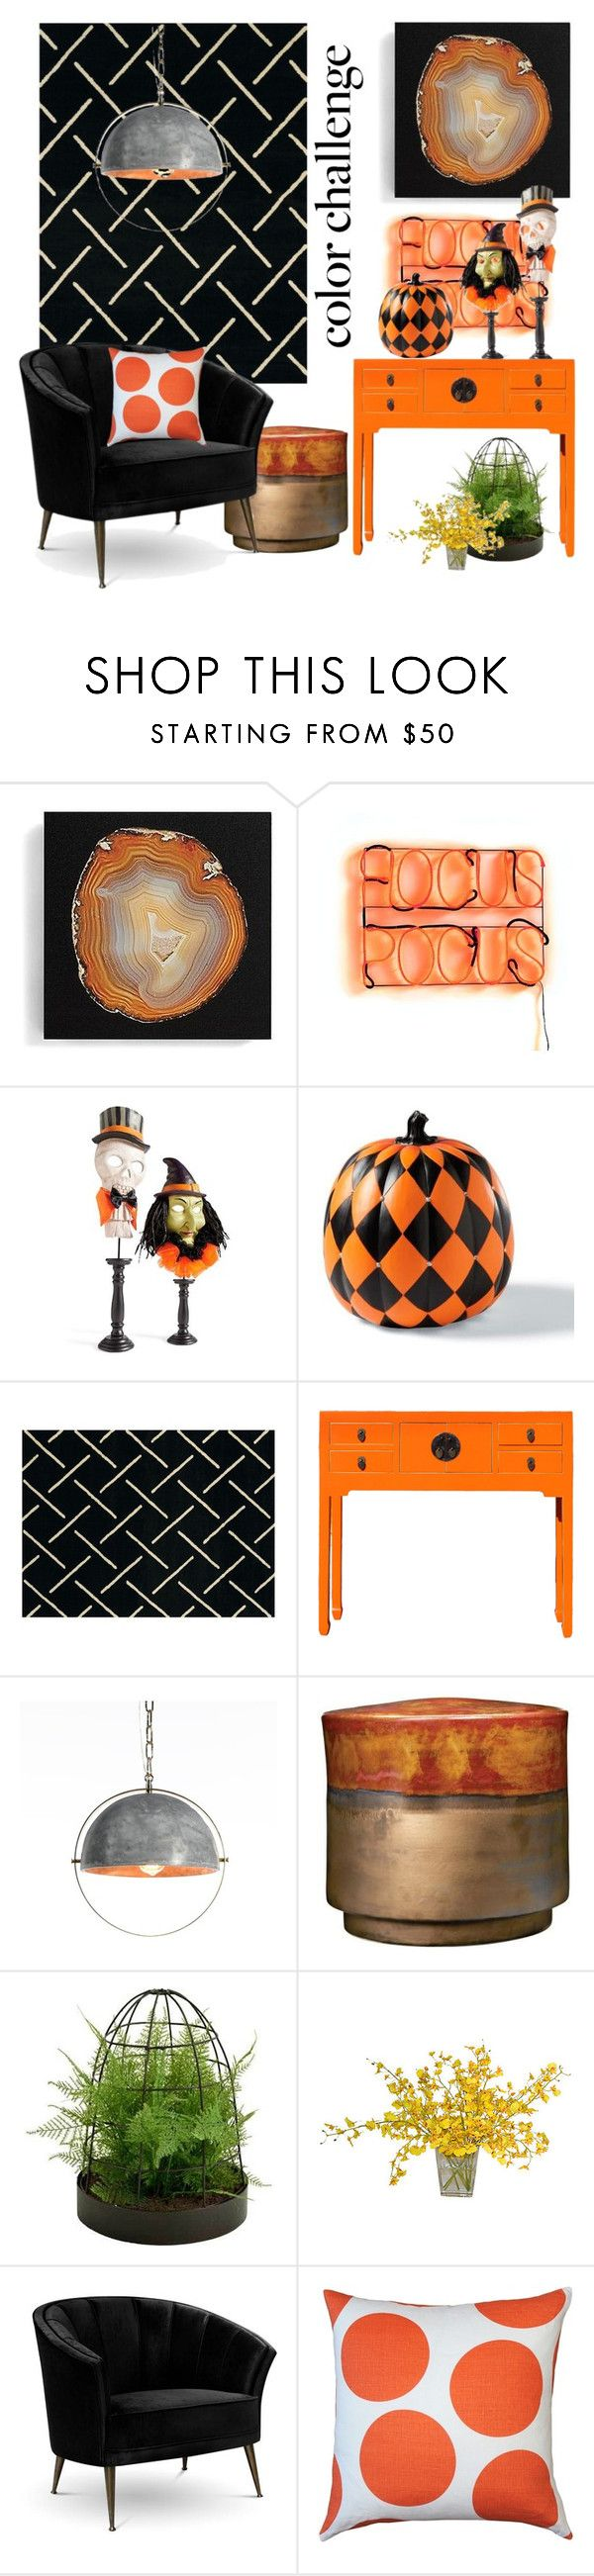 """""""color challenge: orange & black"""" by art-gives-me-life ❤ liked on Polyvore featuring interior, interiors, interior design, home, home decor, interior decorating, Grandin Road, United Weavers of America, West Elm and Picnic at Ascot"""